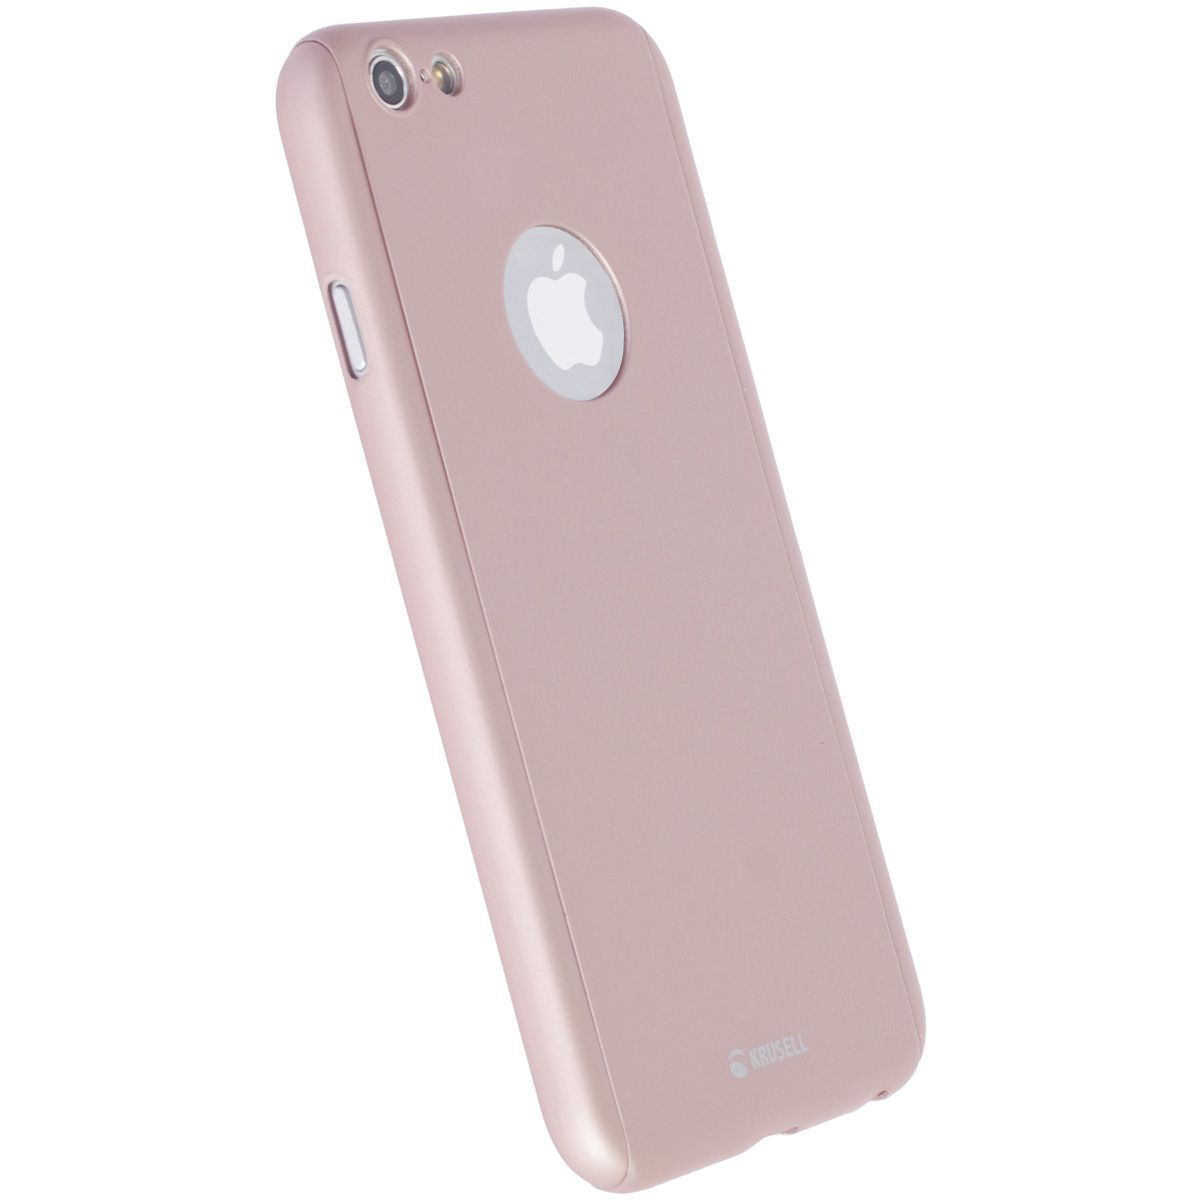 iphone 6 colors rose gold. krusell arvika cover for apple iphone 6/6s - rose gold (includes glass screen iphone 6 colors